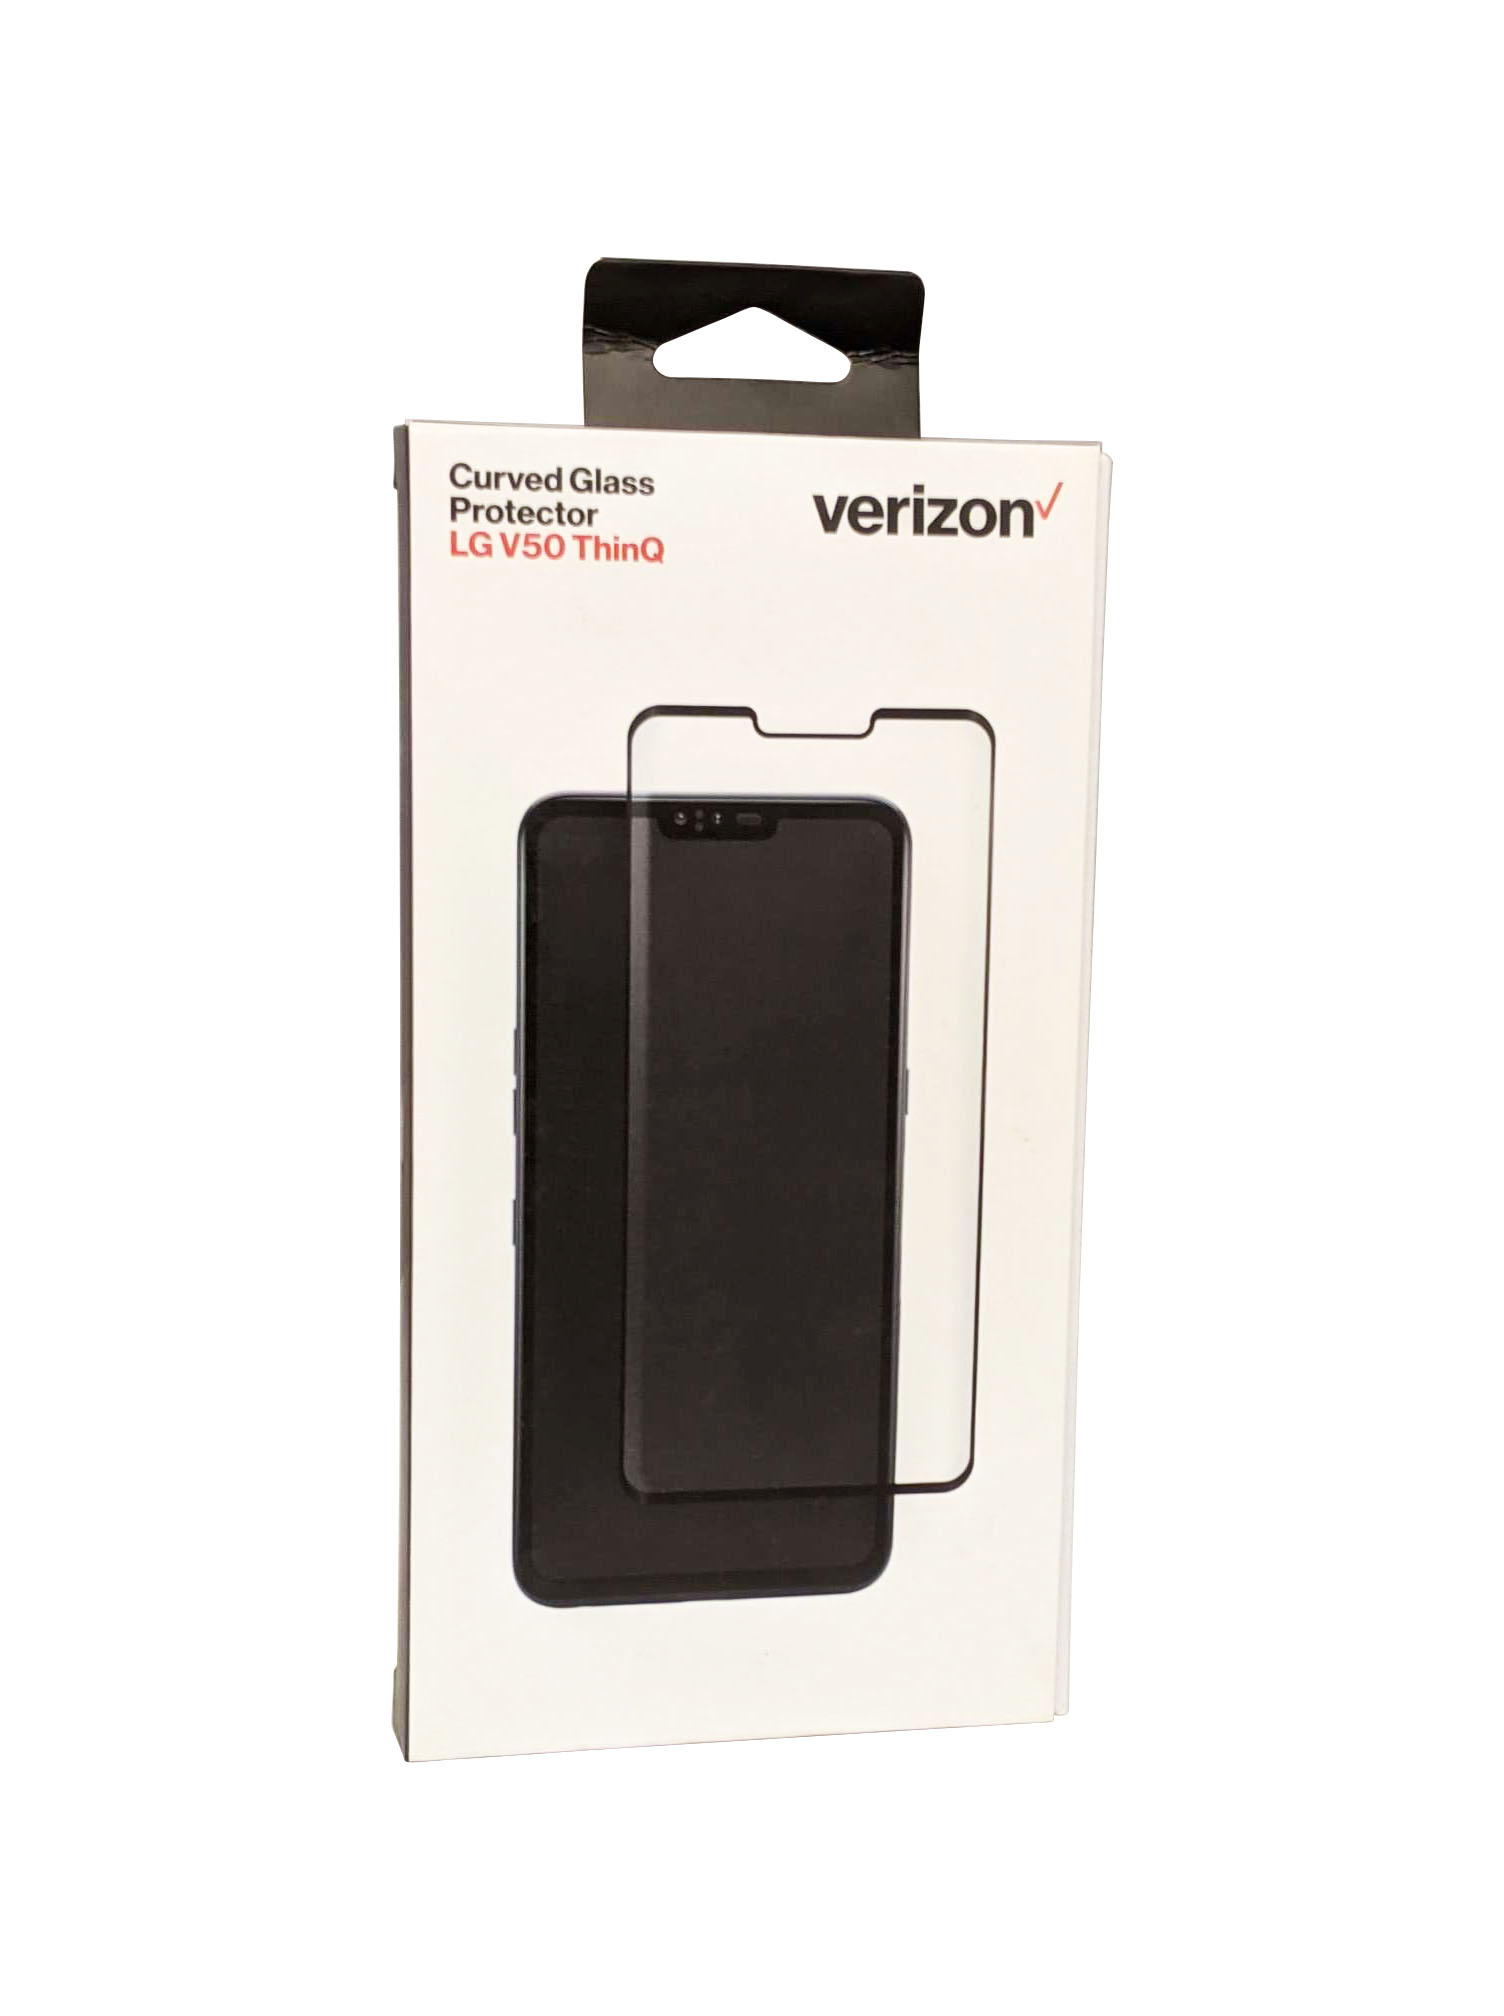 Verizon Curved Tempered Glass Screen Protector for LG V50 ThinQ